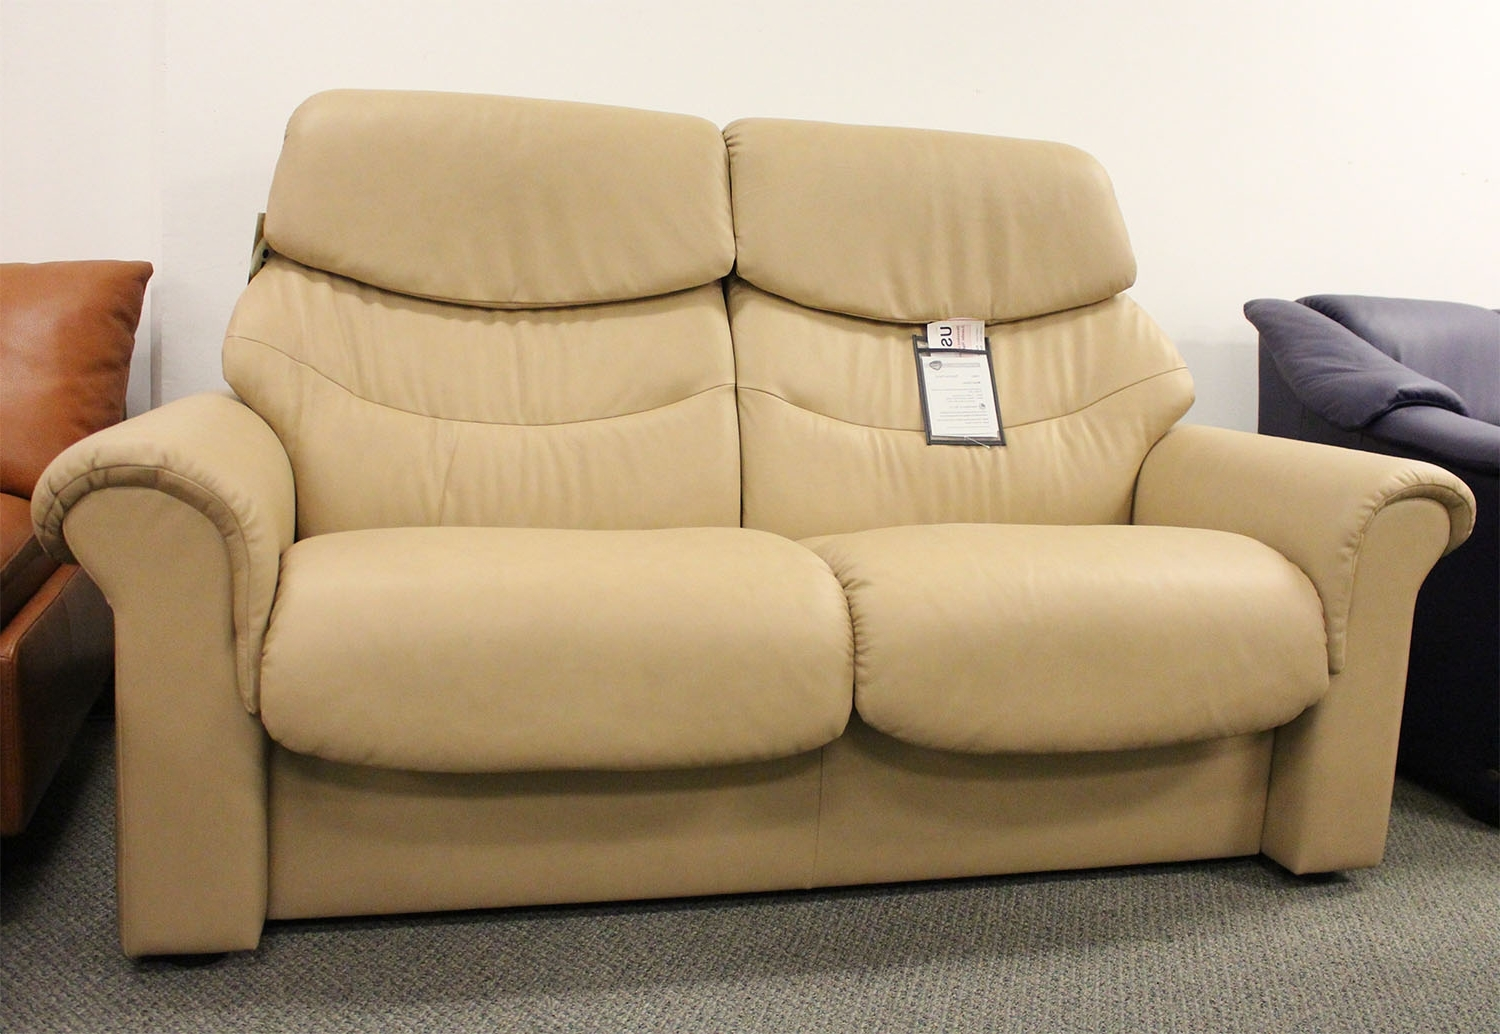 Famous High Point Nc Sectional Sofas Inside High Back Sectional Sofas – It Is Better To Opt For Leather Or Fabric? (View 8 of 20)